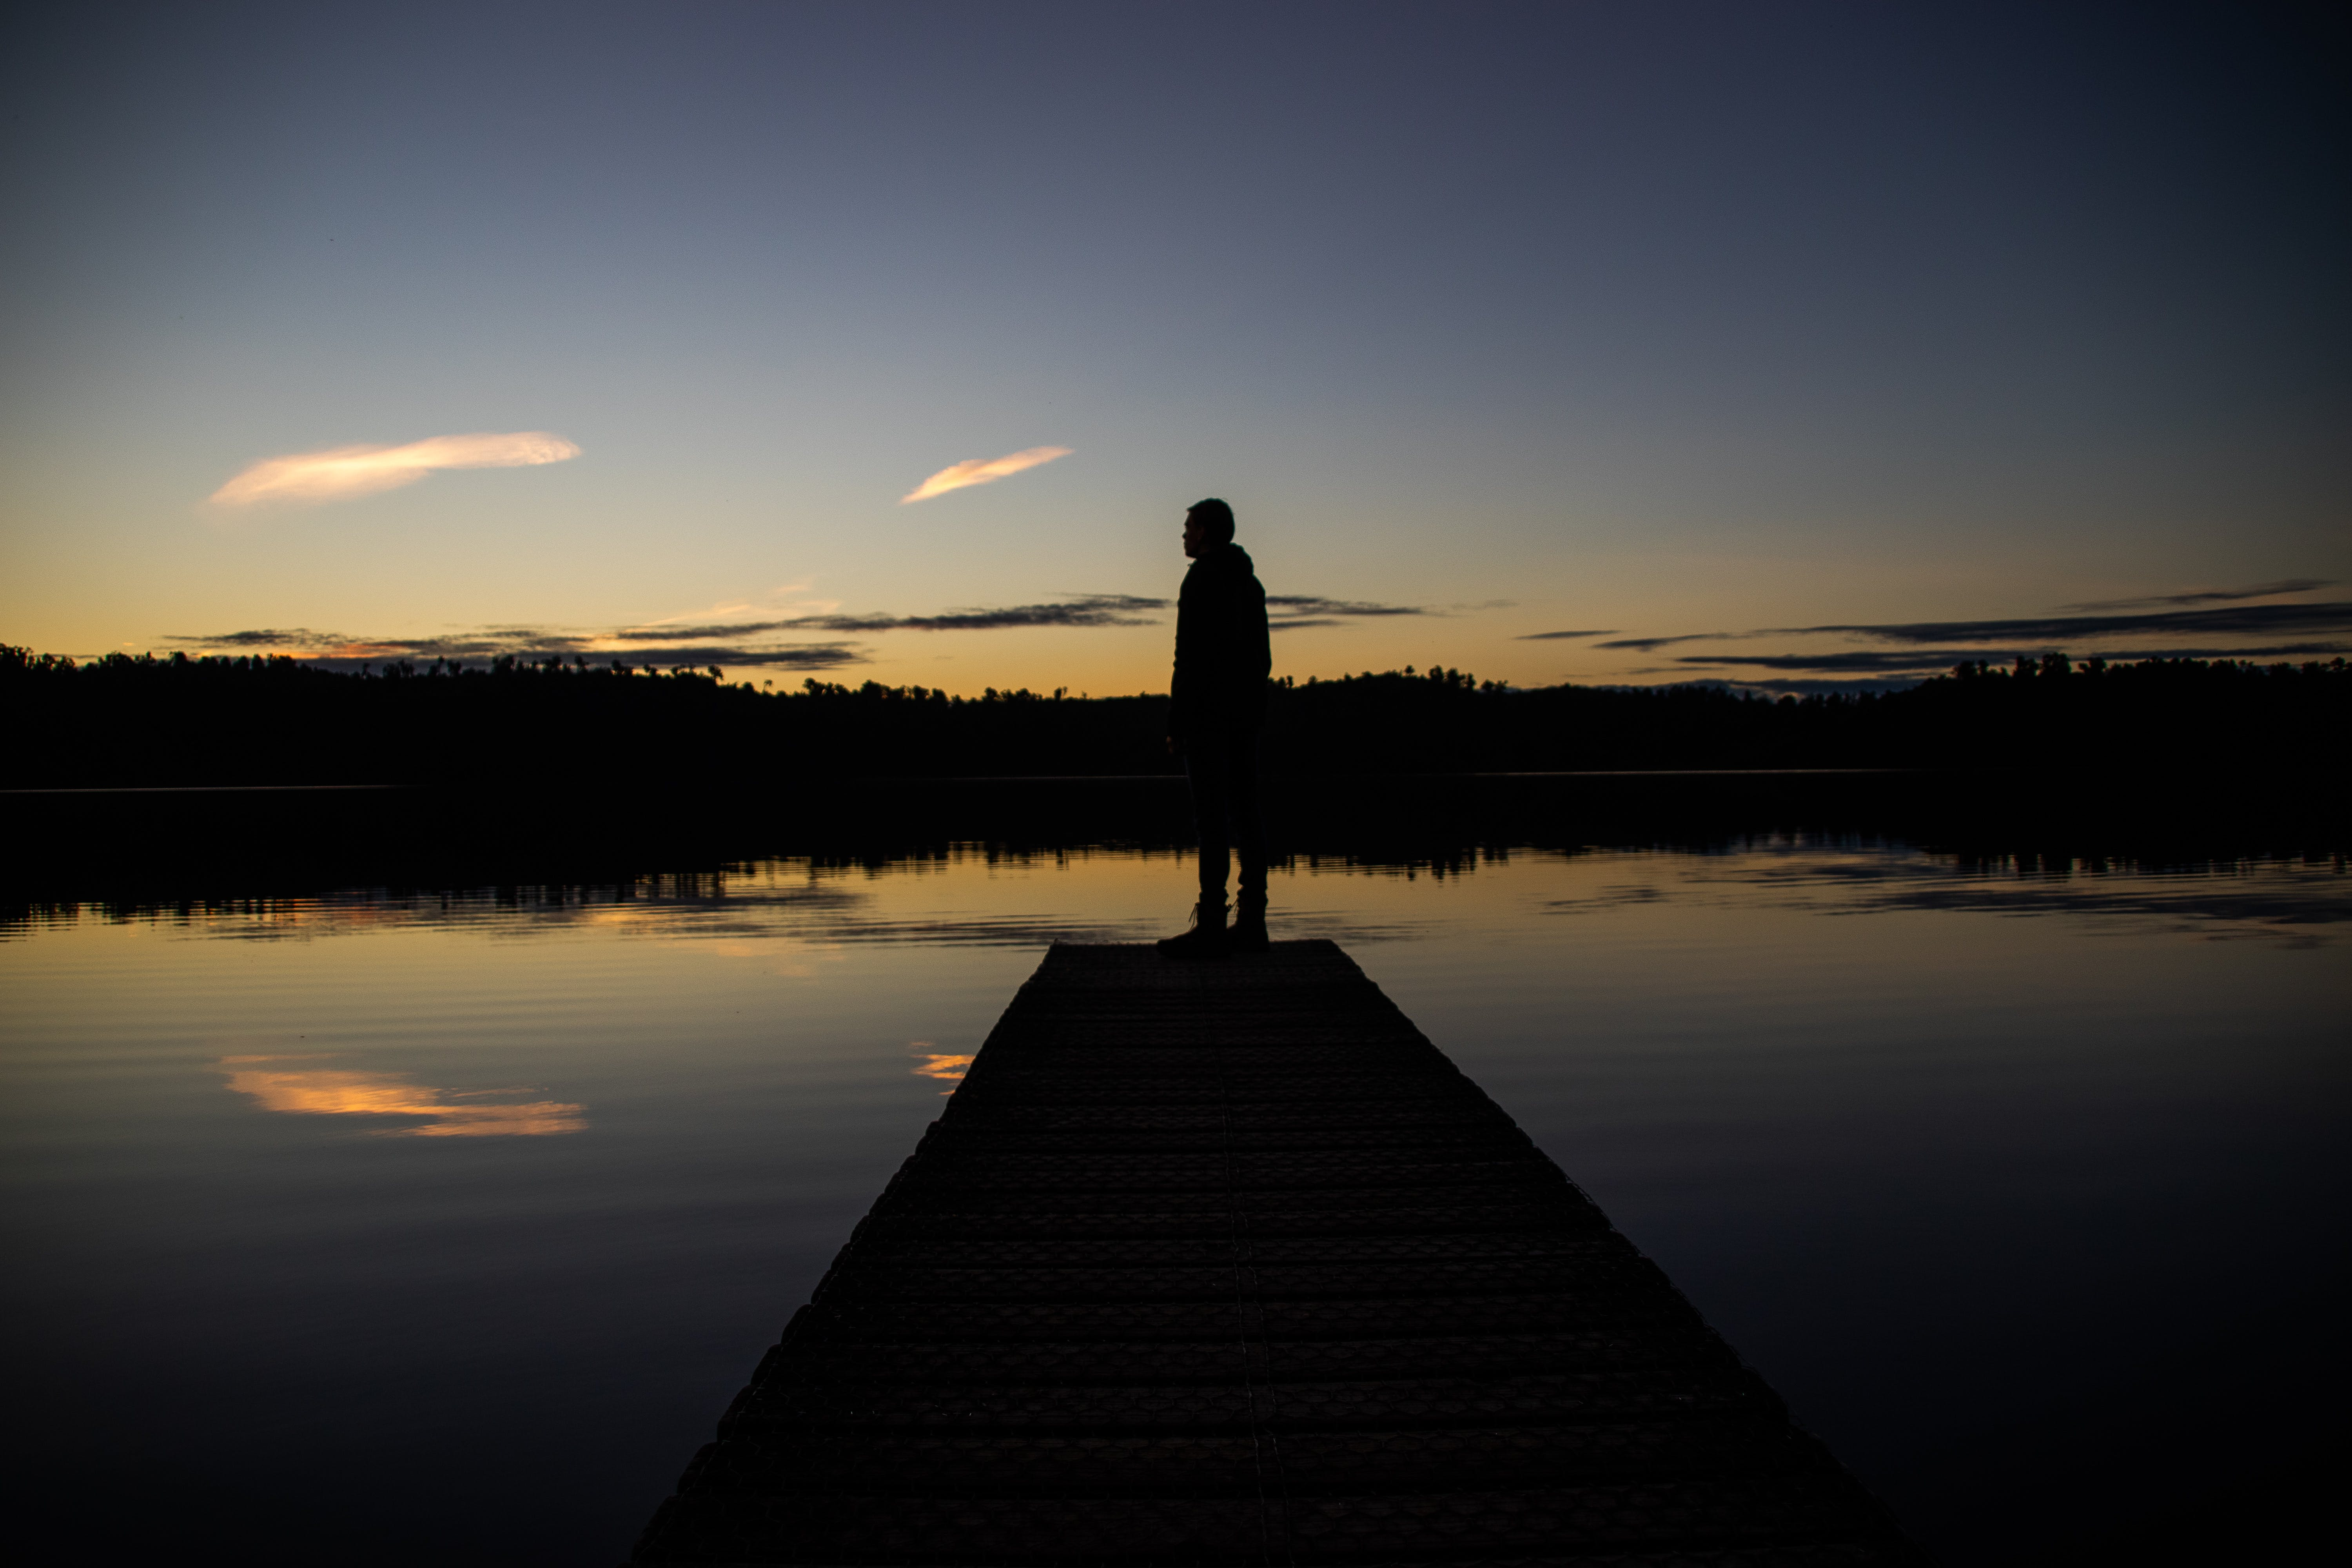 Silhouette of Person Standing on Body of Water Dock during Sunrise